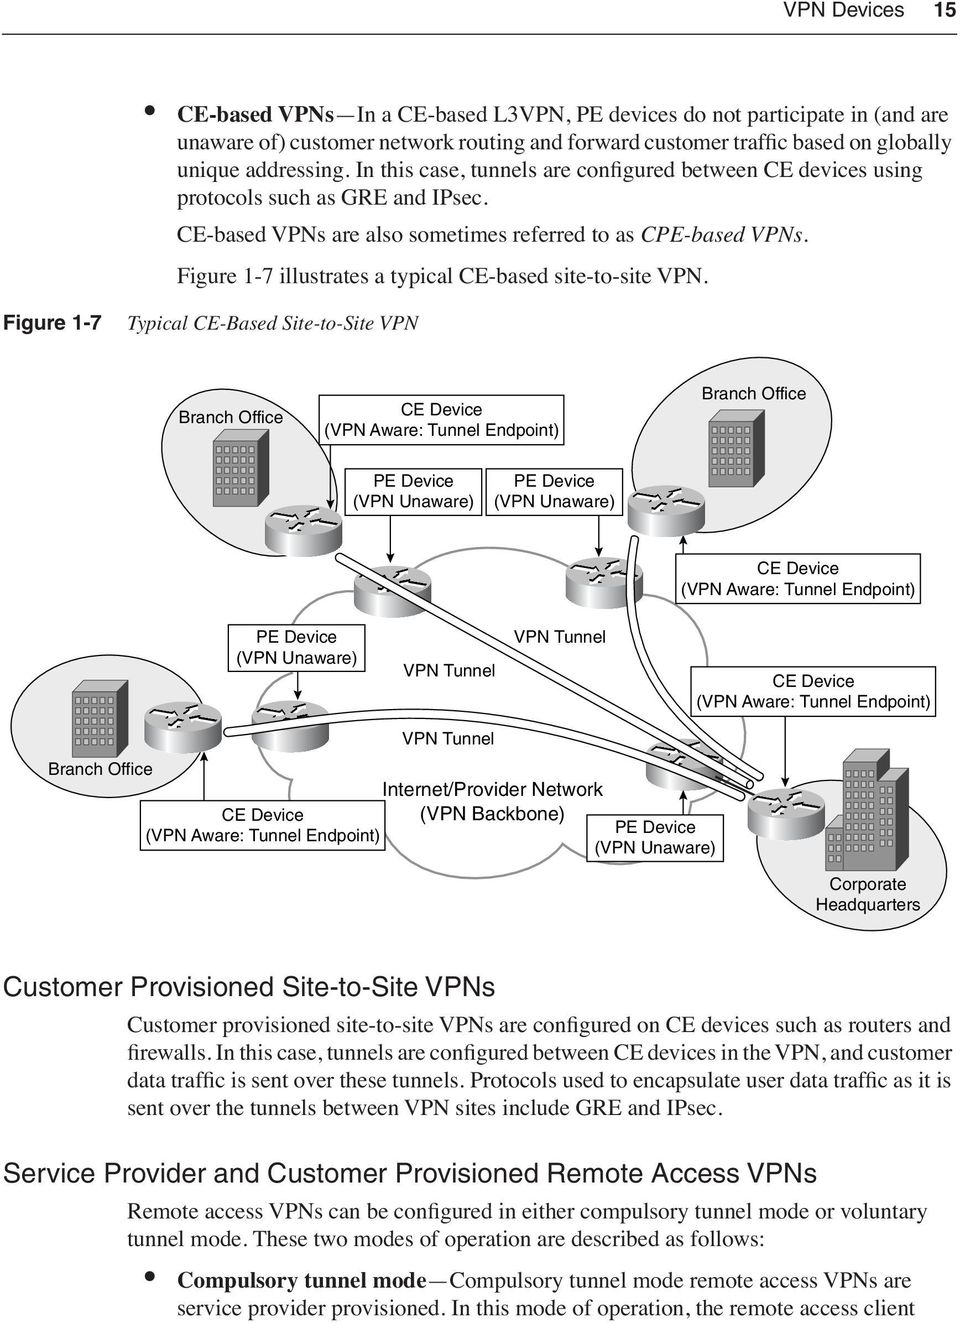 Figure 1-7 illustrates a typical CE-based site-to-site VPN.